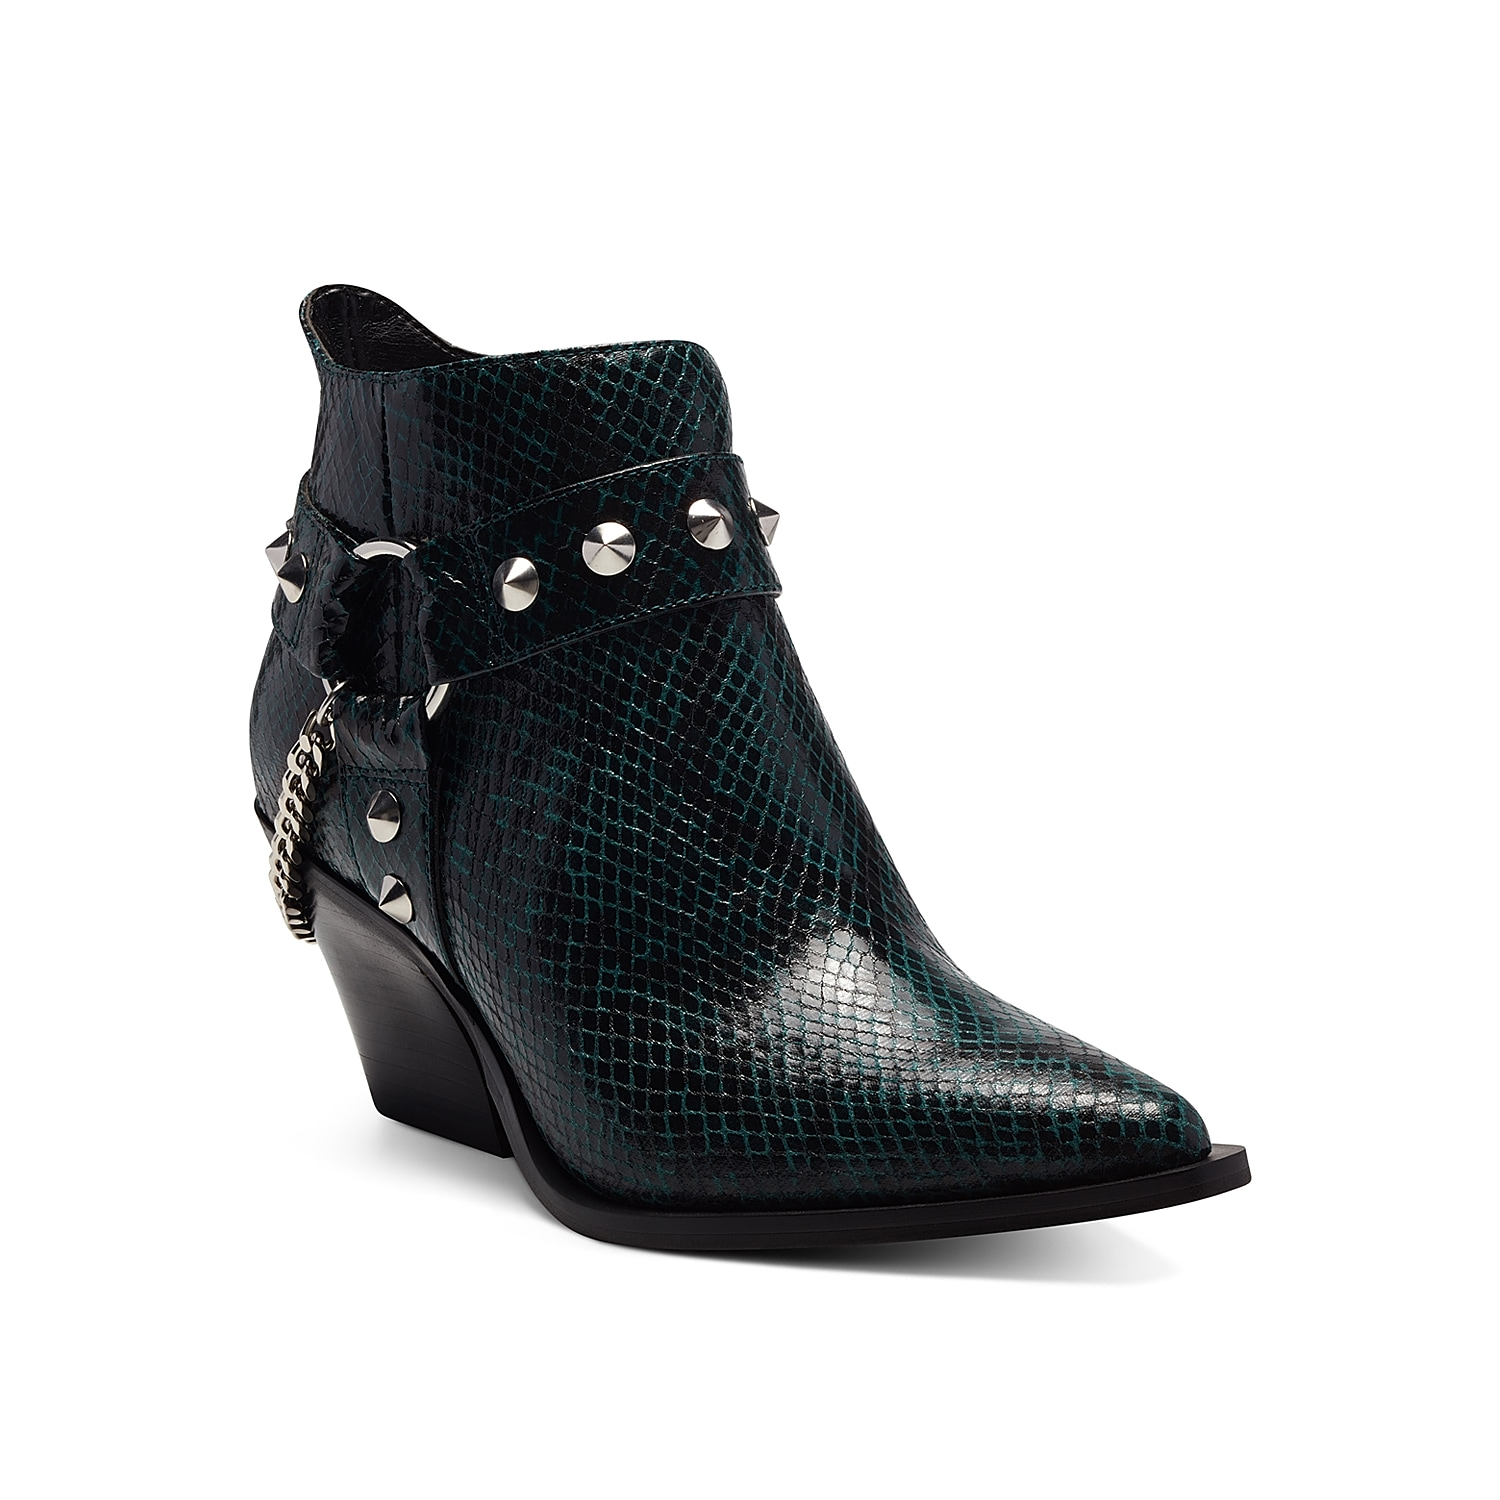 Western appeal gets a modern update with the Zayrie bootie from Jessica Simpson. Featuring a studded harness with a chain accent, this ankle boot adds edge to any outfit. Click here for Boot Measuring Guide.